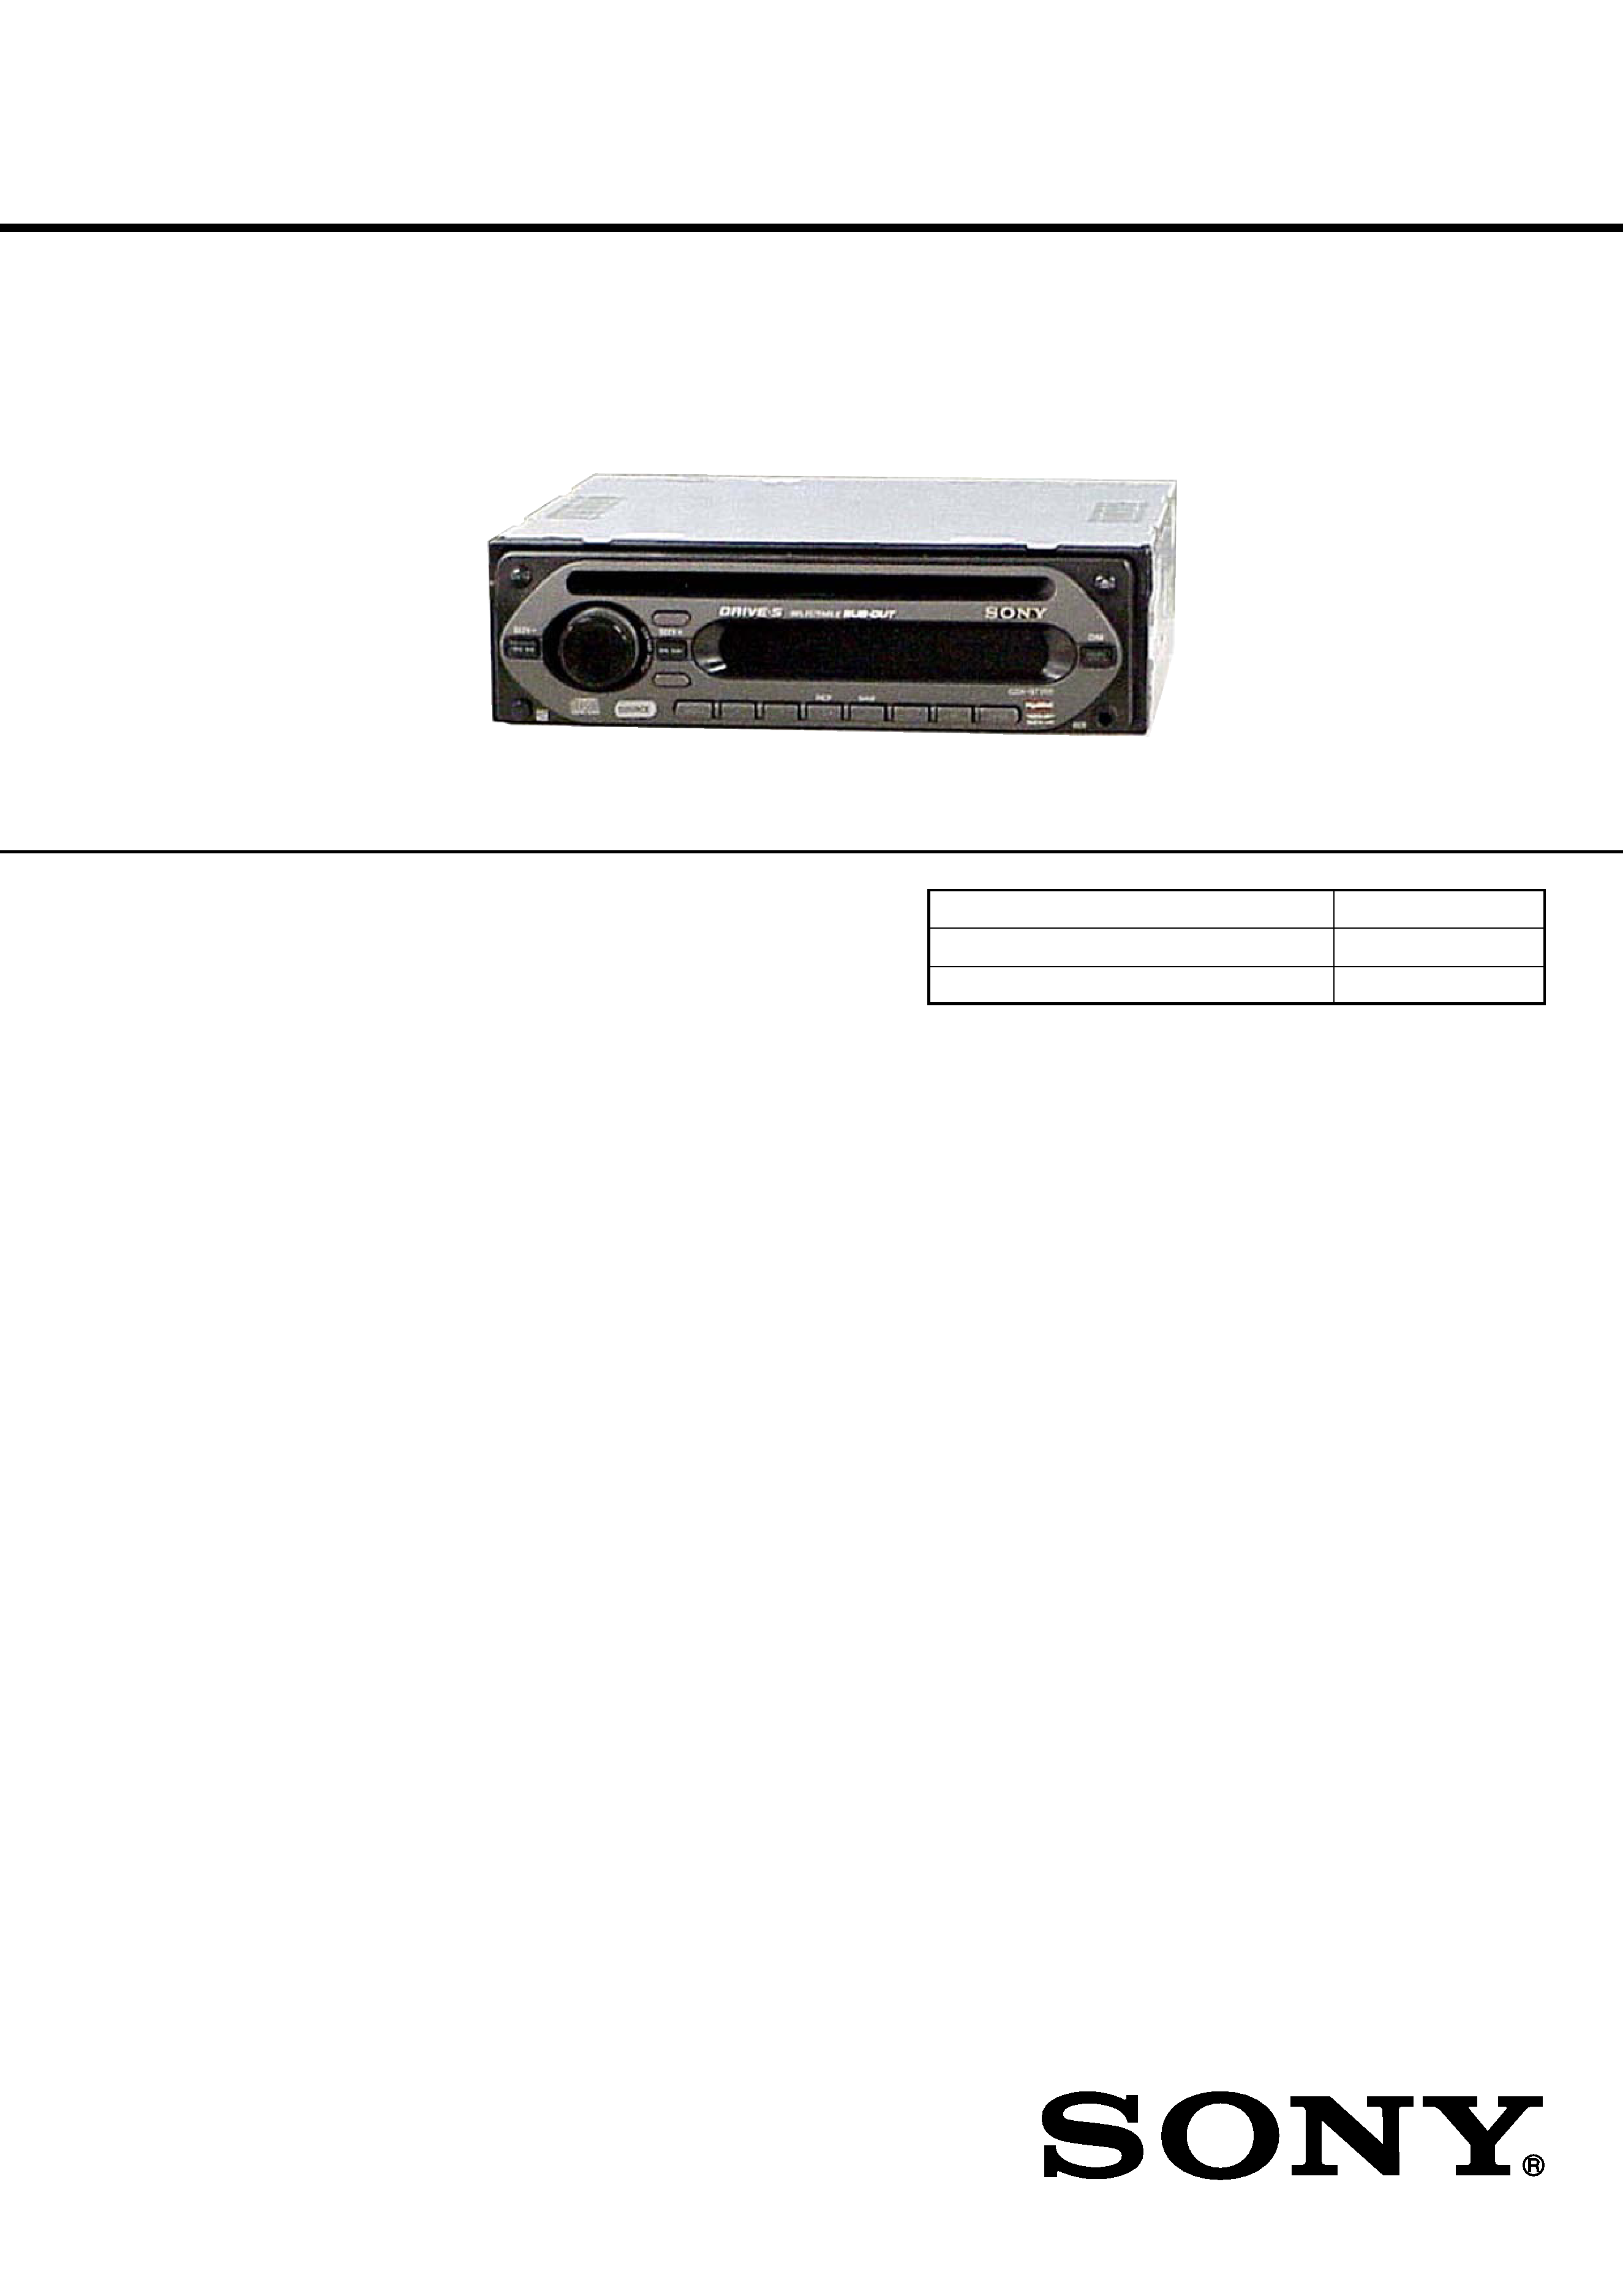 Sony Cdxgt250s Service Manual Immediate Download Cdx Gt200 Wiring Diagram Free Schematic And Background Image